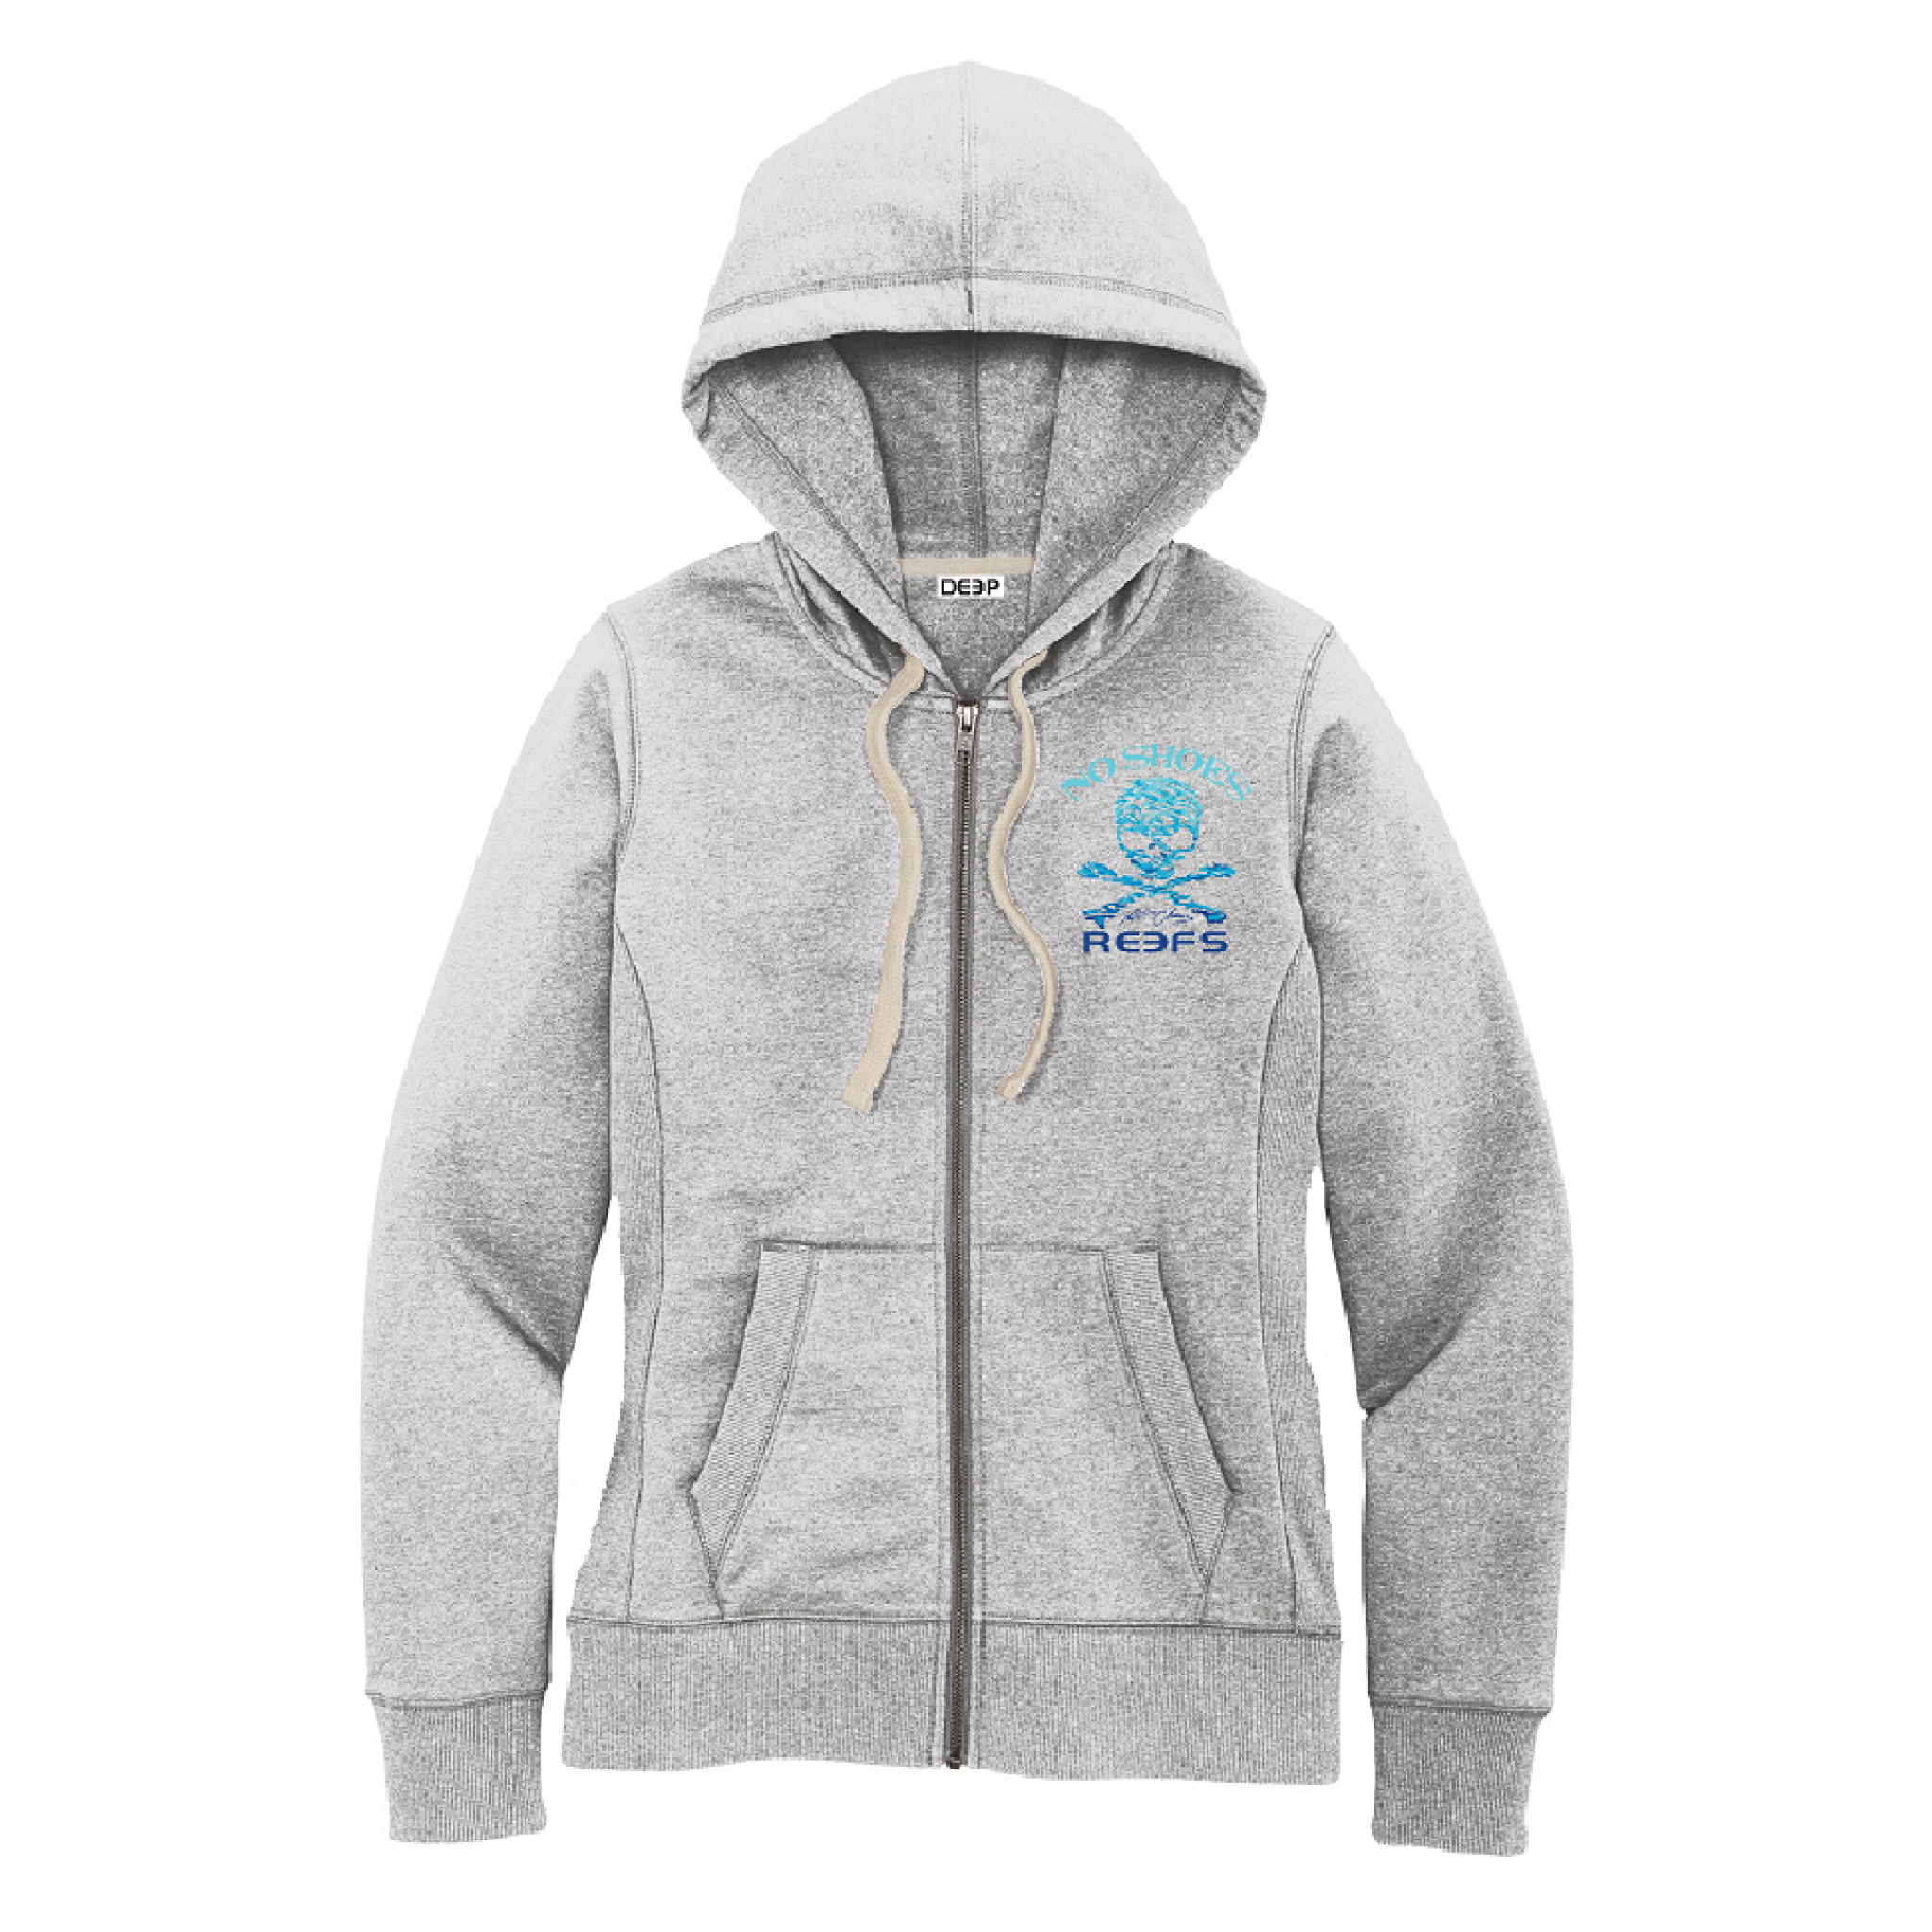 No Shoes Reefs Womens Zip Up Hoodie - Light Grey Heather